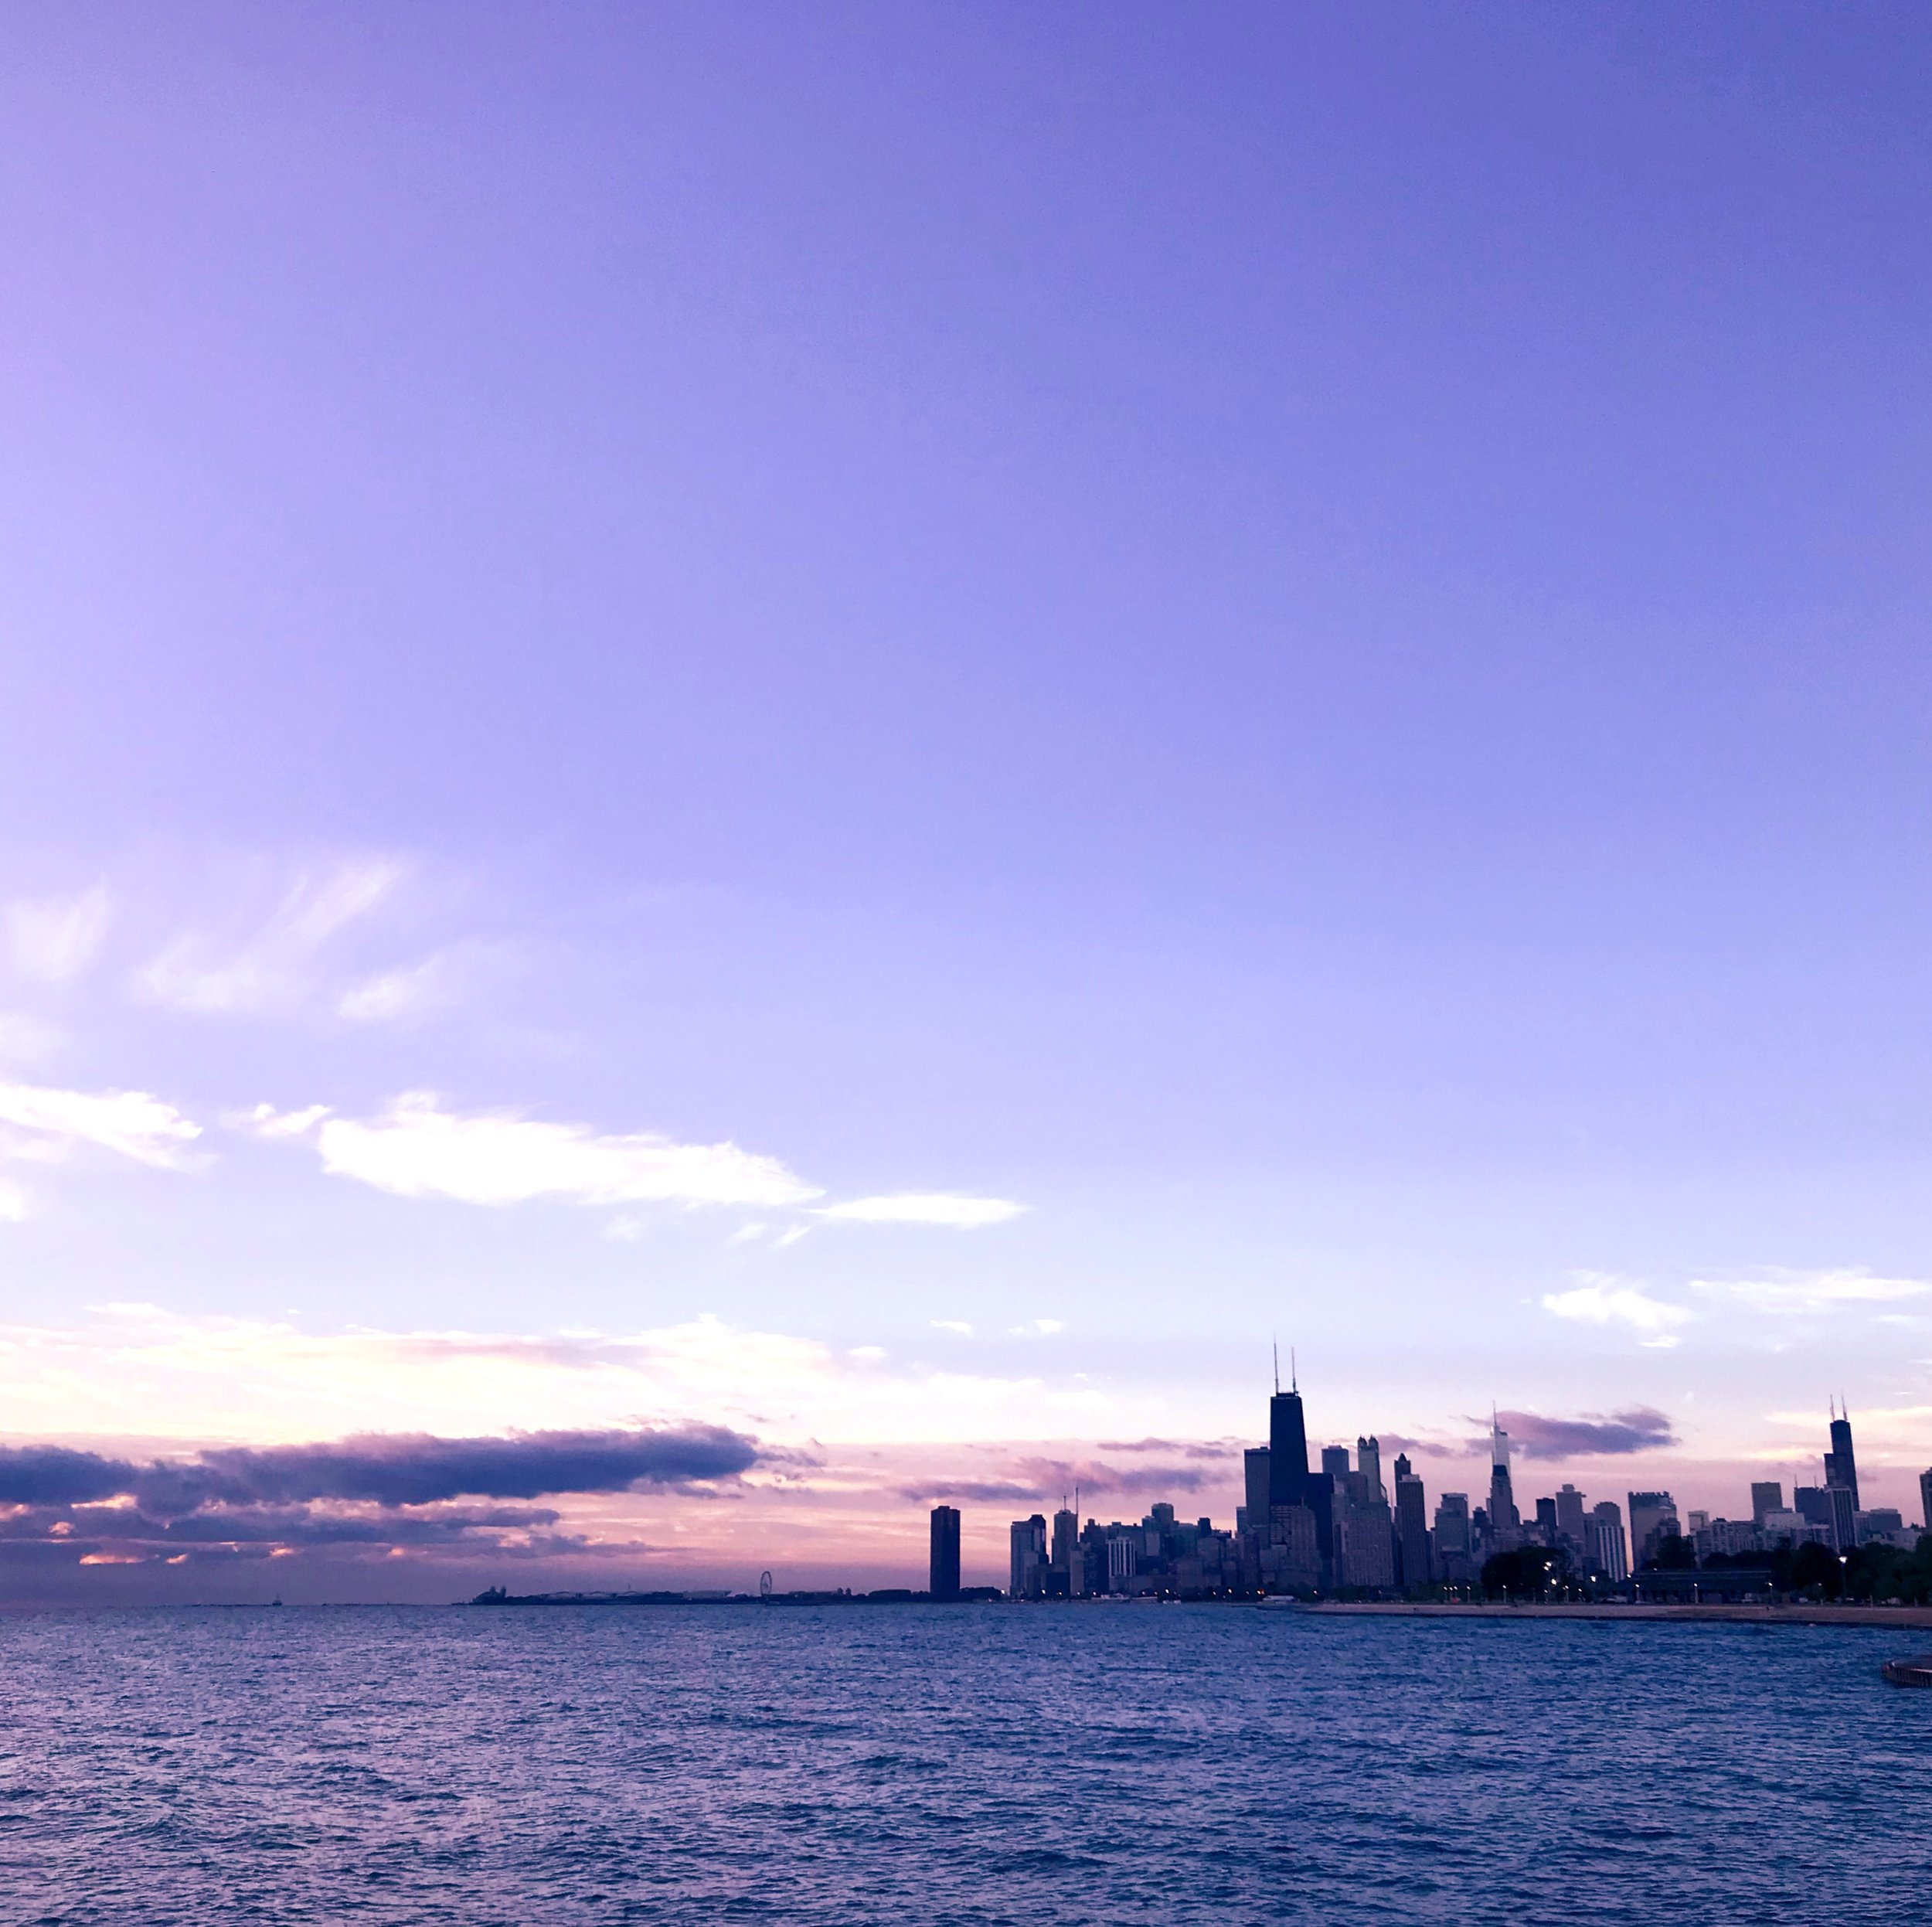 September 2017 - Chicago sunrise on Lake Michigan.